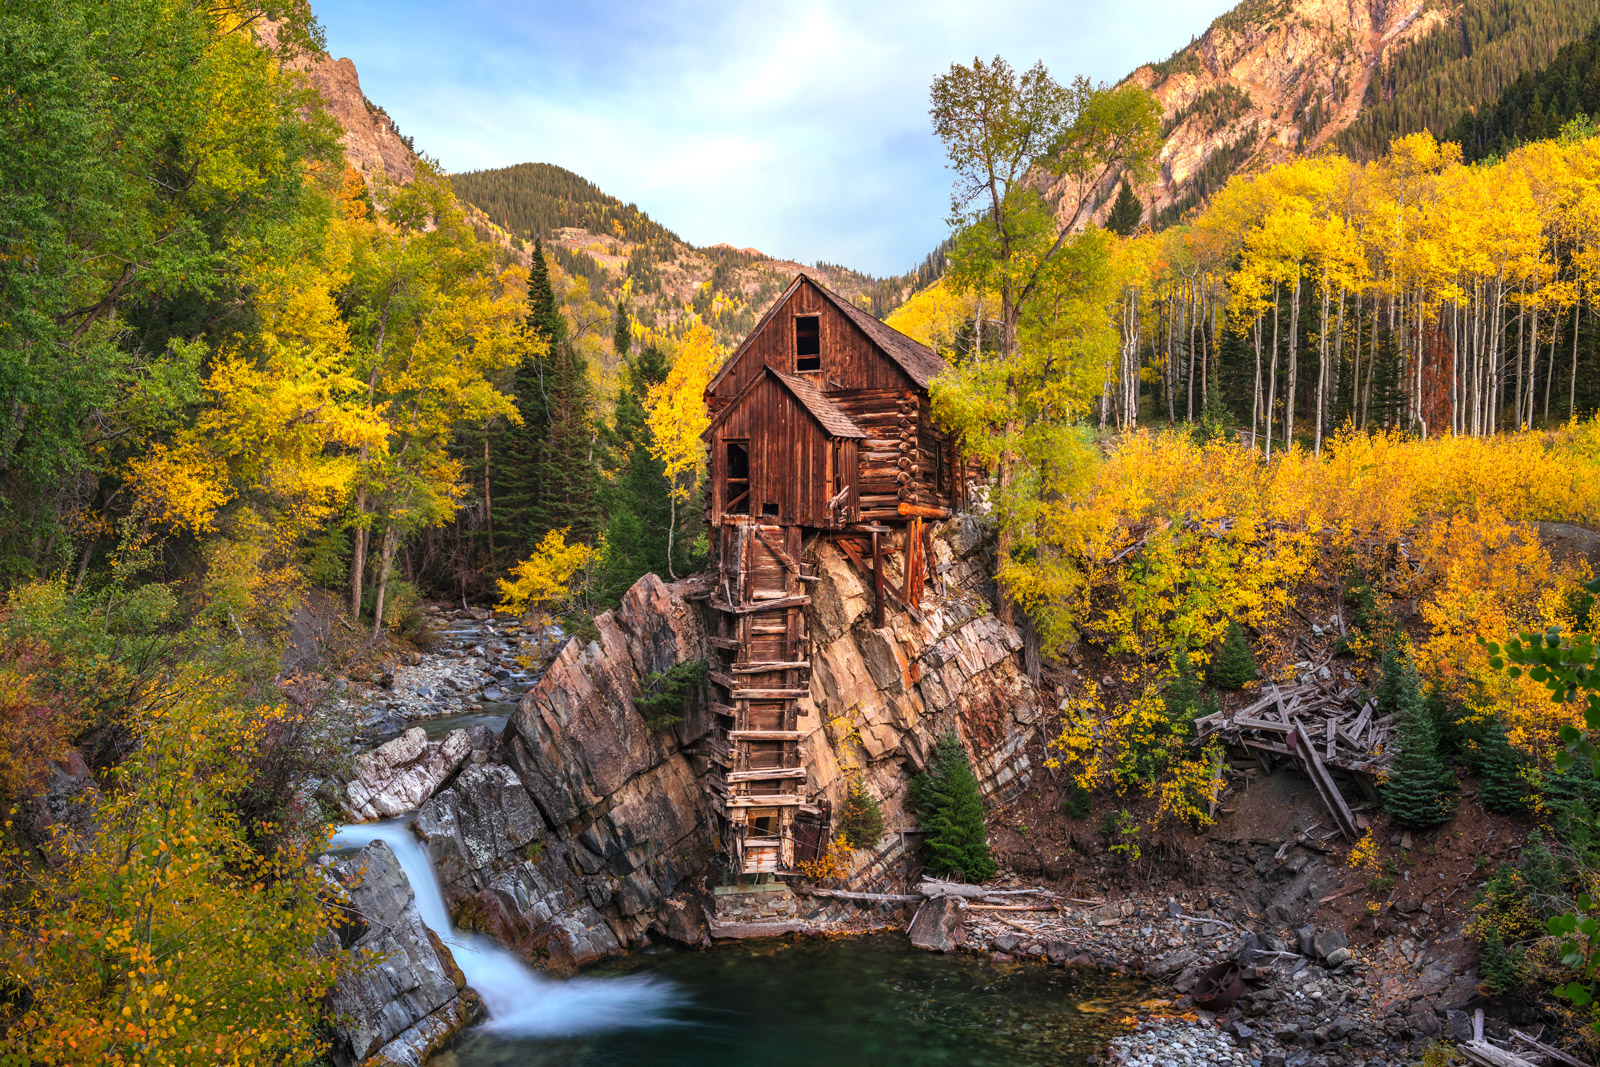 A Limited Edition, Fine Art photograph of the iconic Crystal Mill surrounded by brilliant fall colors in the San Juan Mountains...